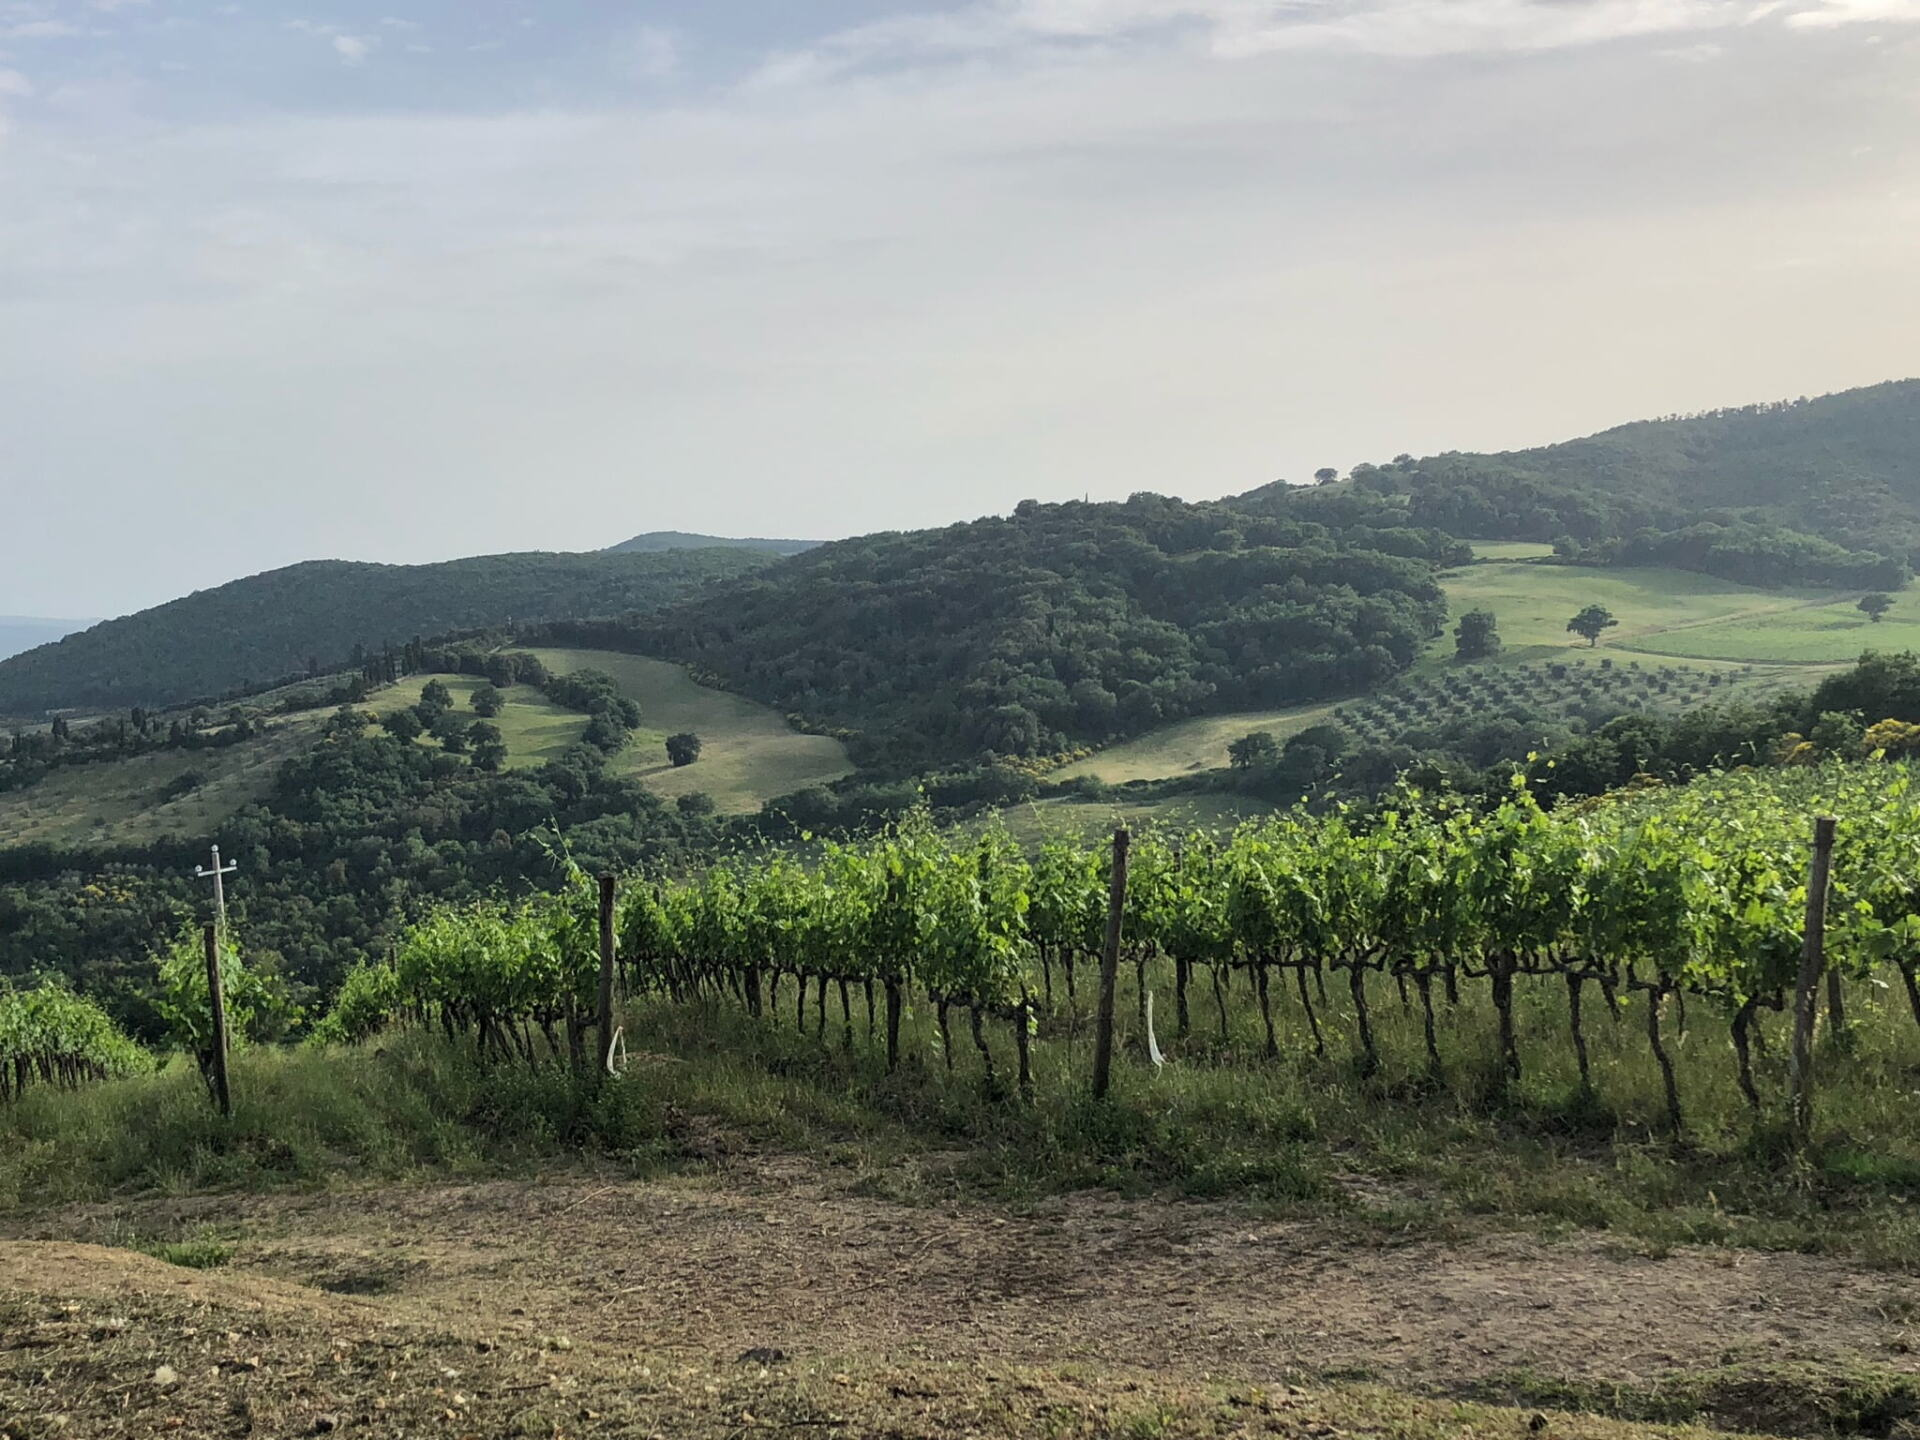 Grapevines and Vineyards at Baricci